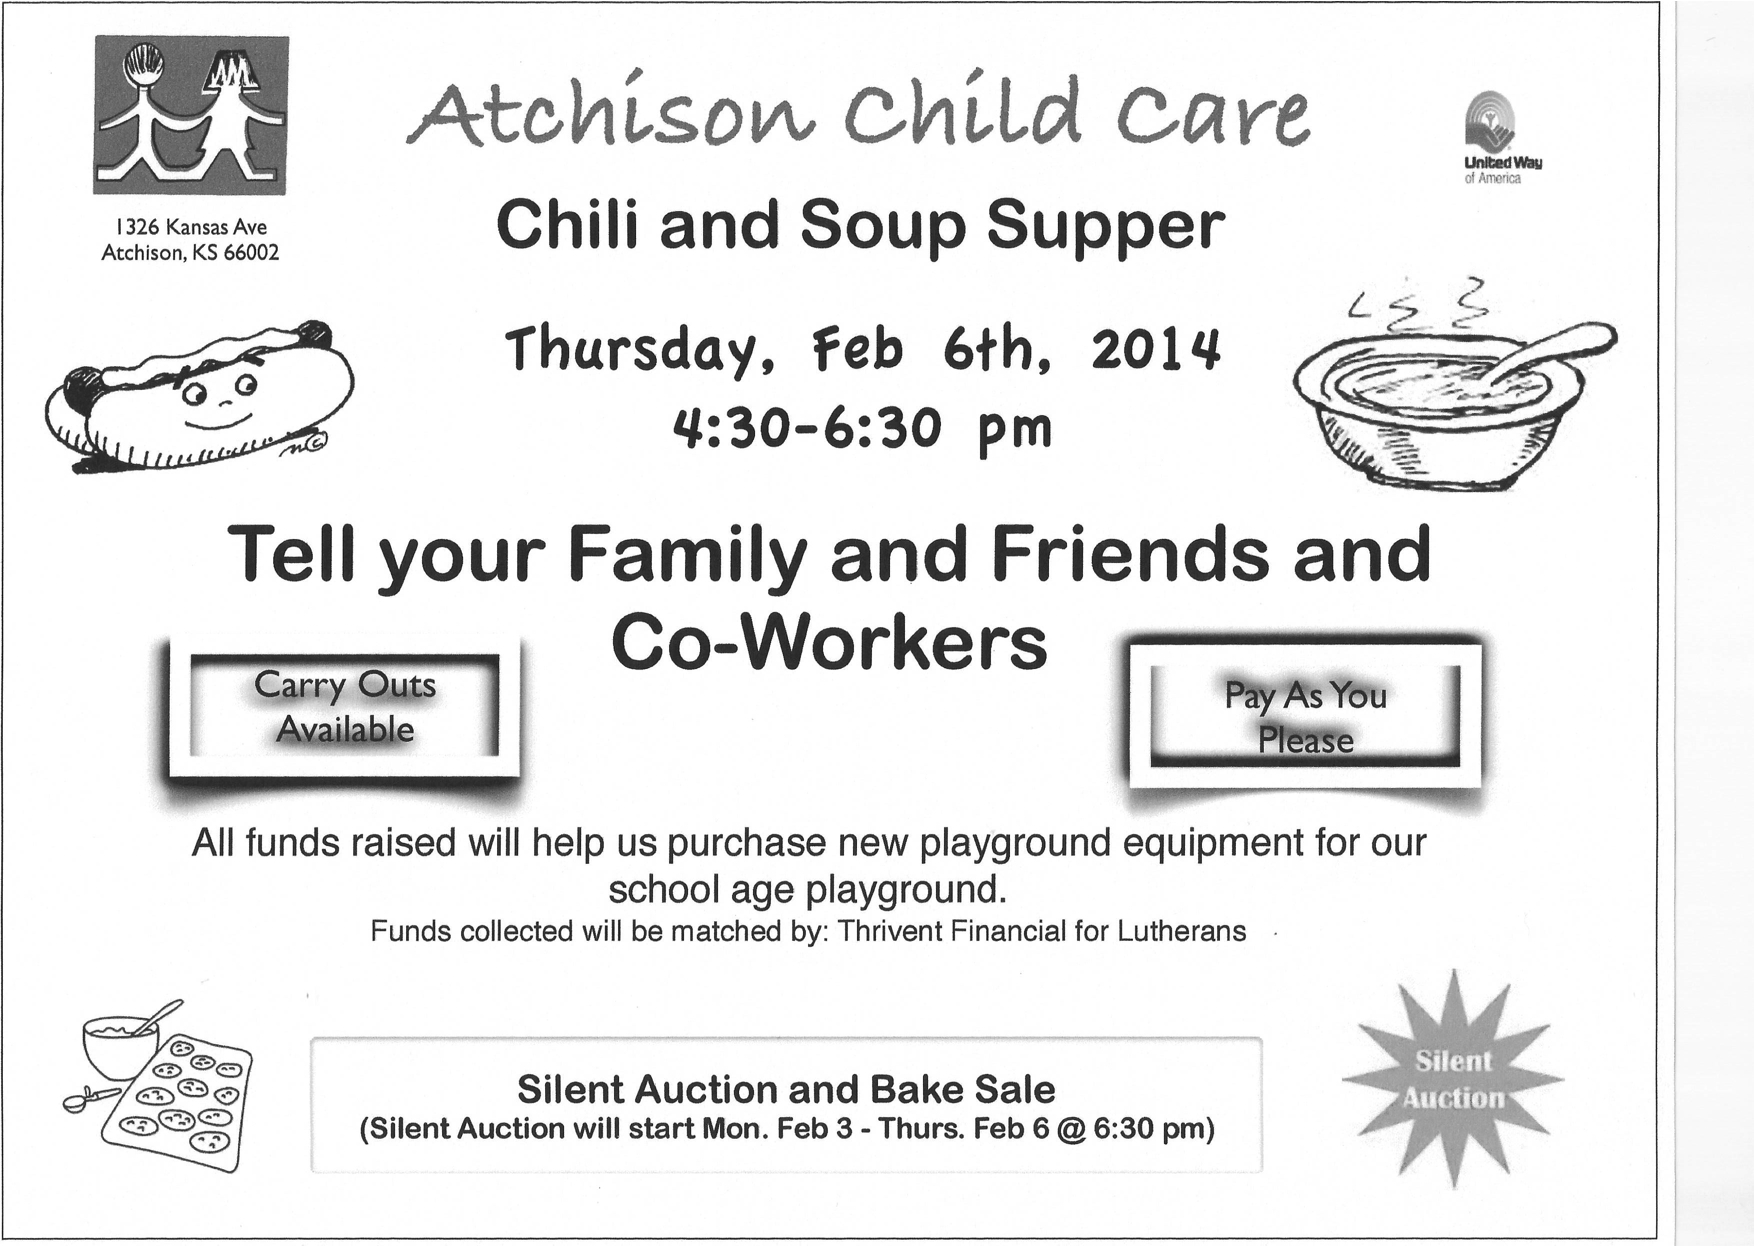 Atchison Child Care Chili Supper & Silent Auction